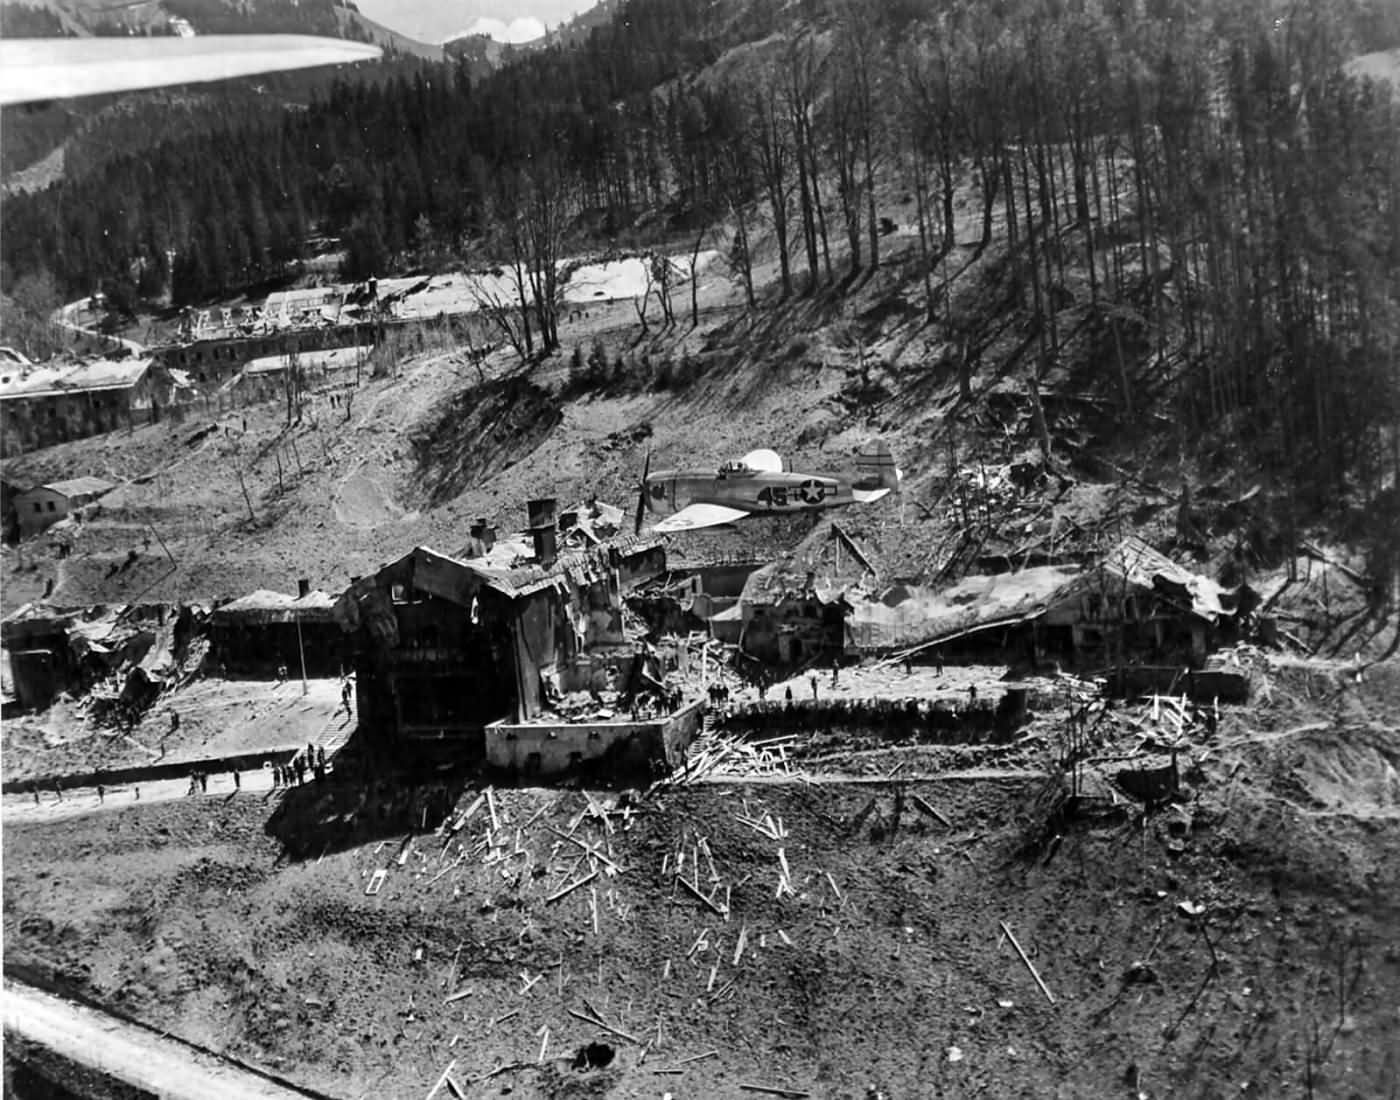 P-47 Thunderbolt over ruins of Berchtesgaden